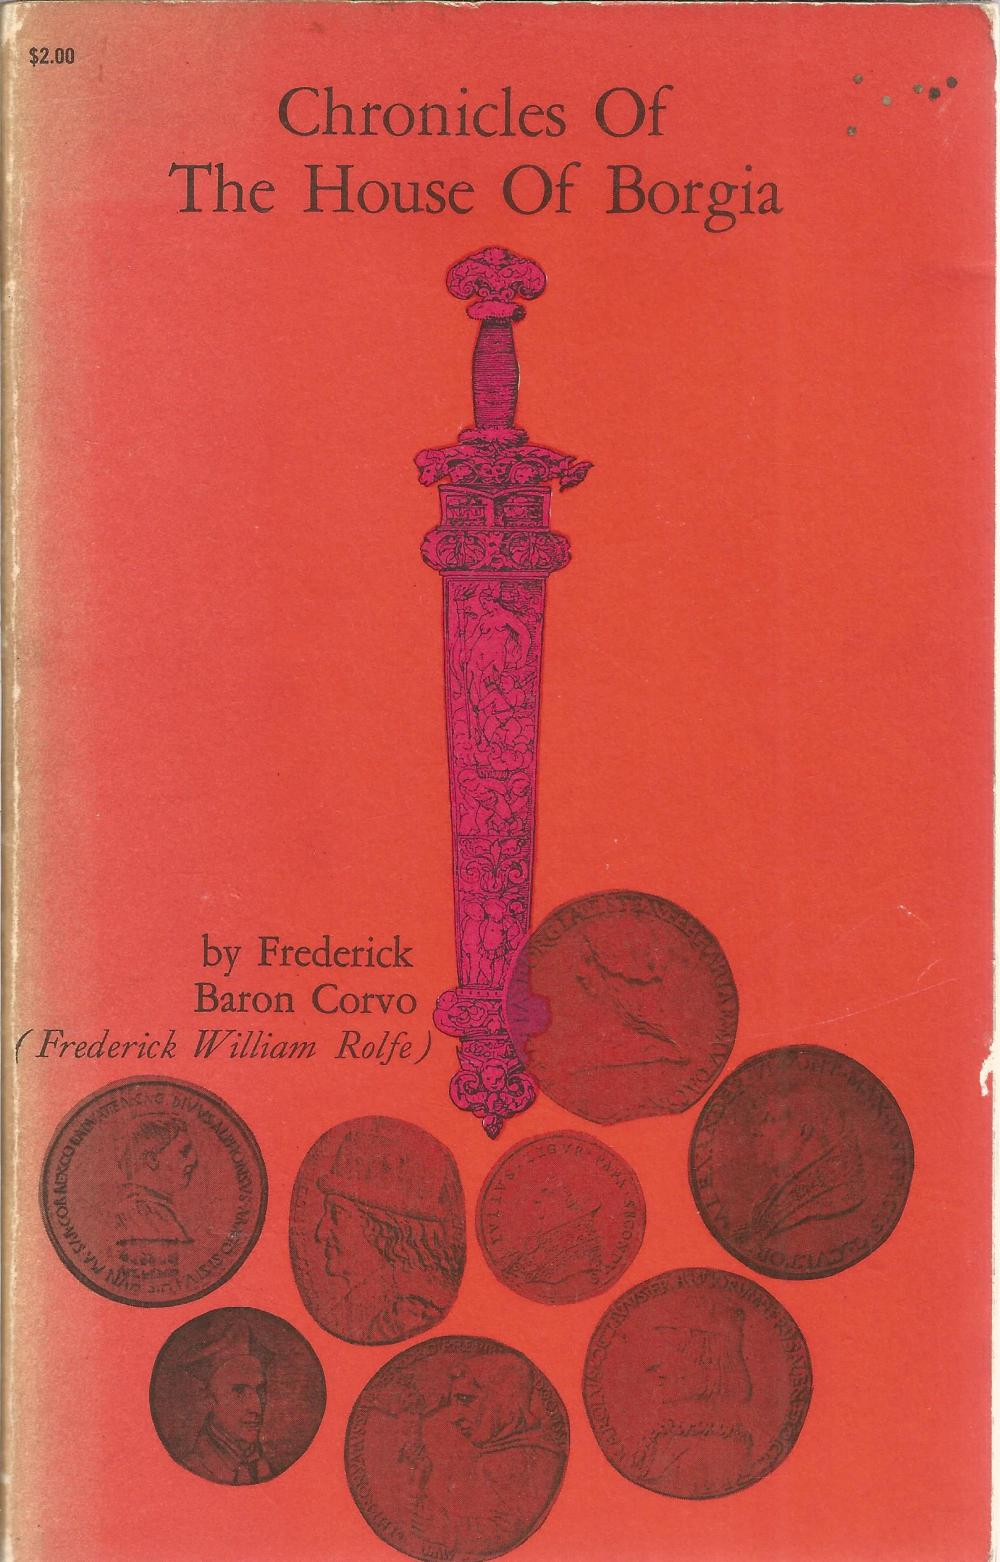 Chronicles of The House of Borgia by Frederick Baron Corvo. Unsigned paperback book with no dust